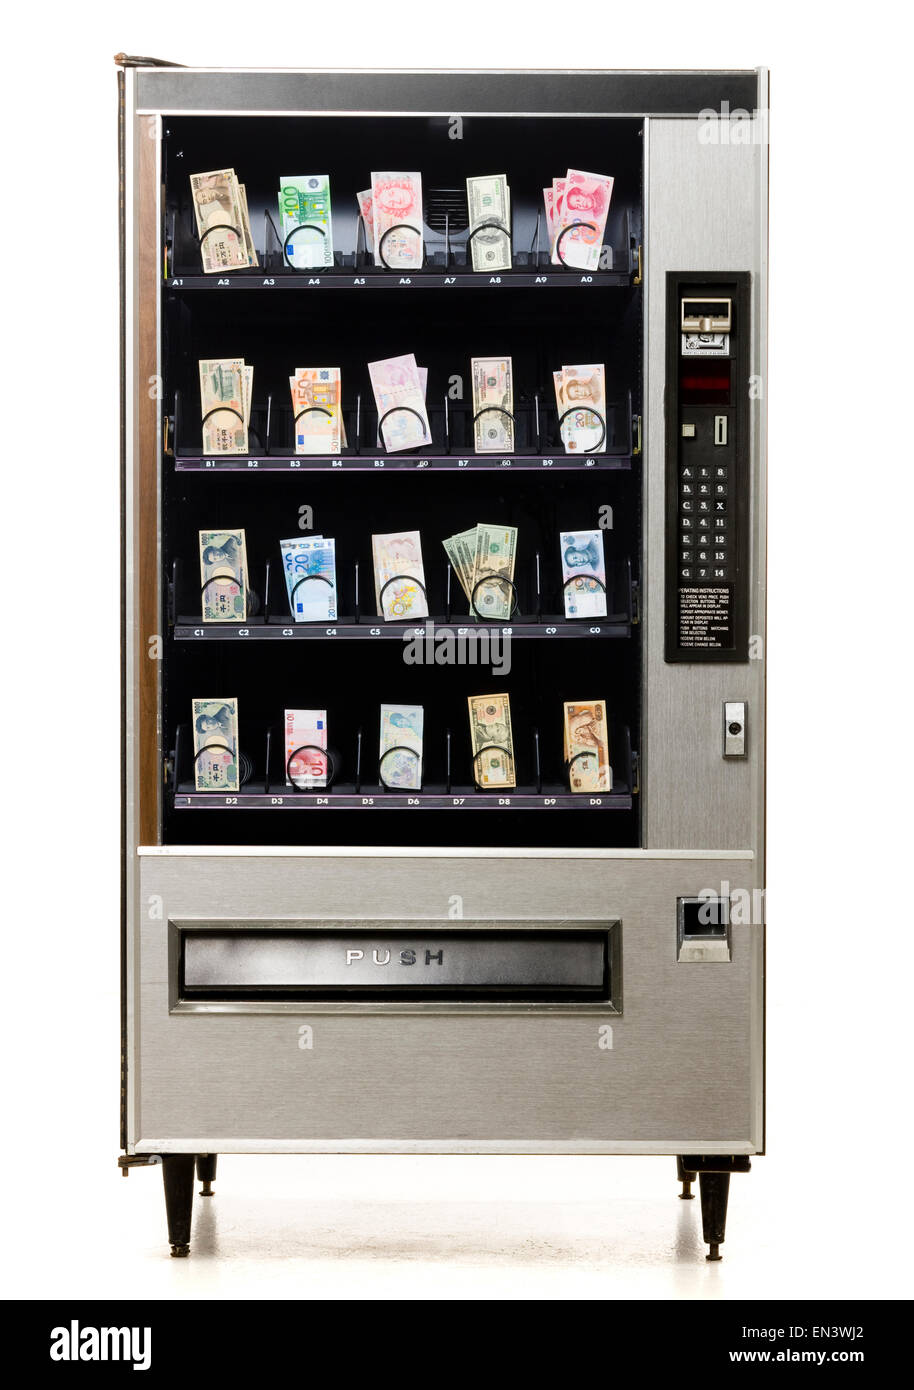 different currencies in a vending machine - Stock Image